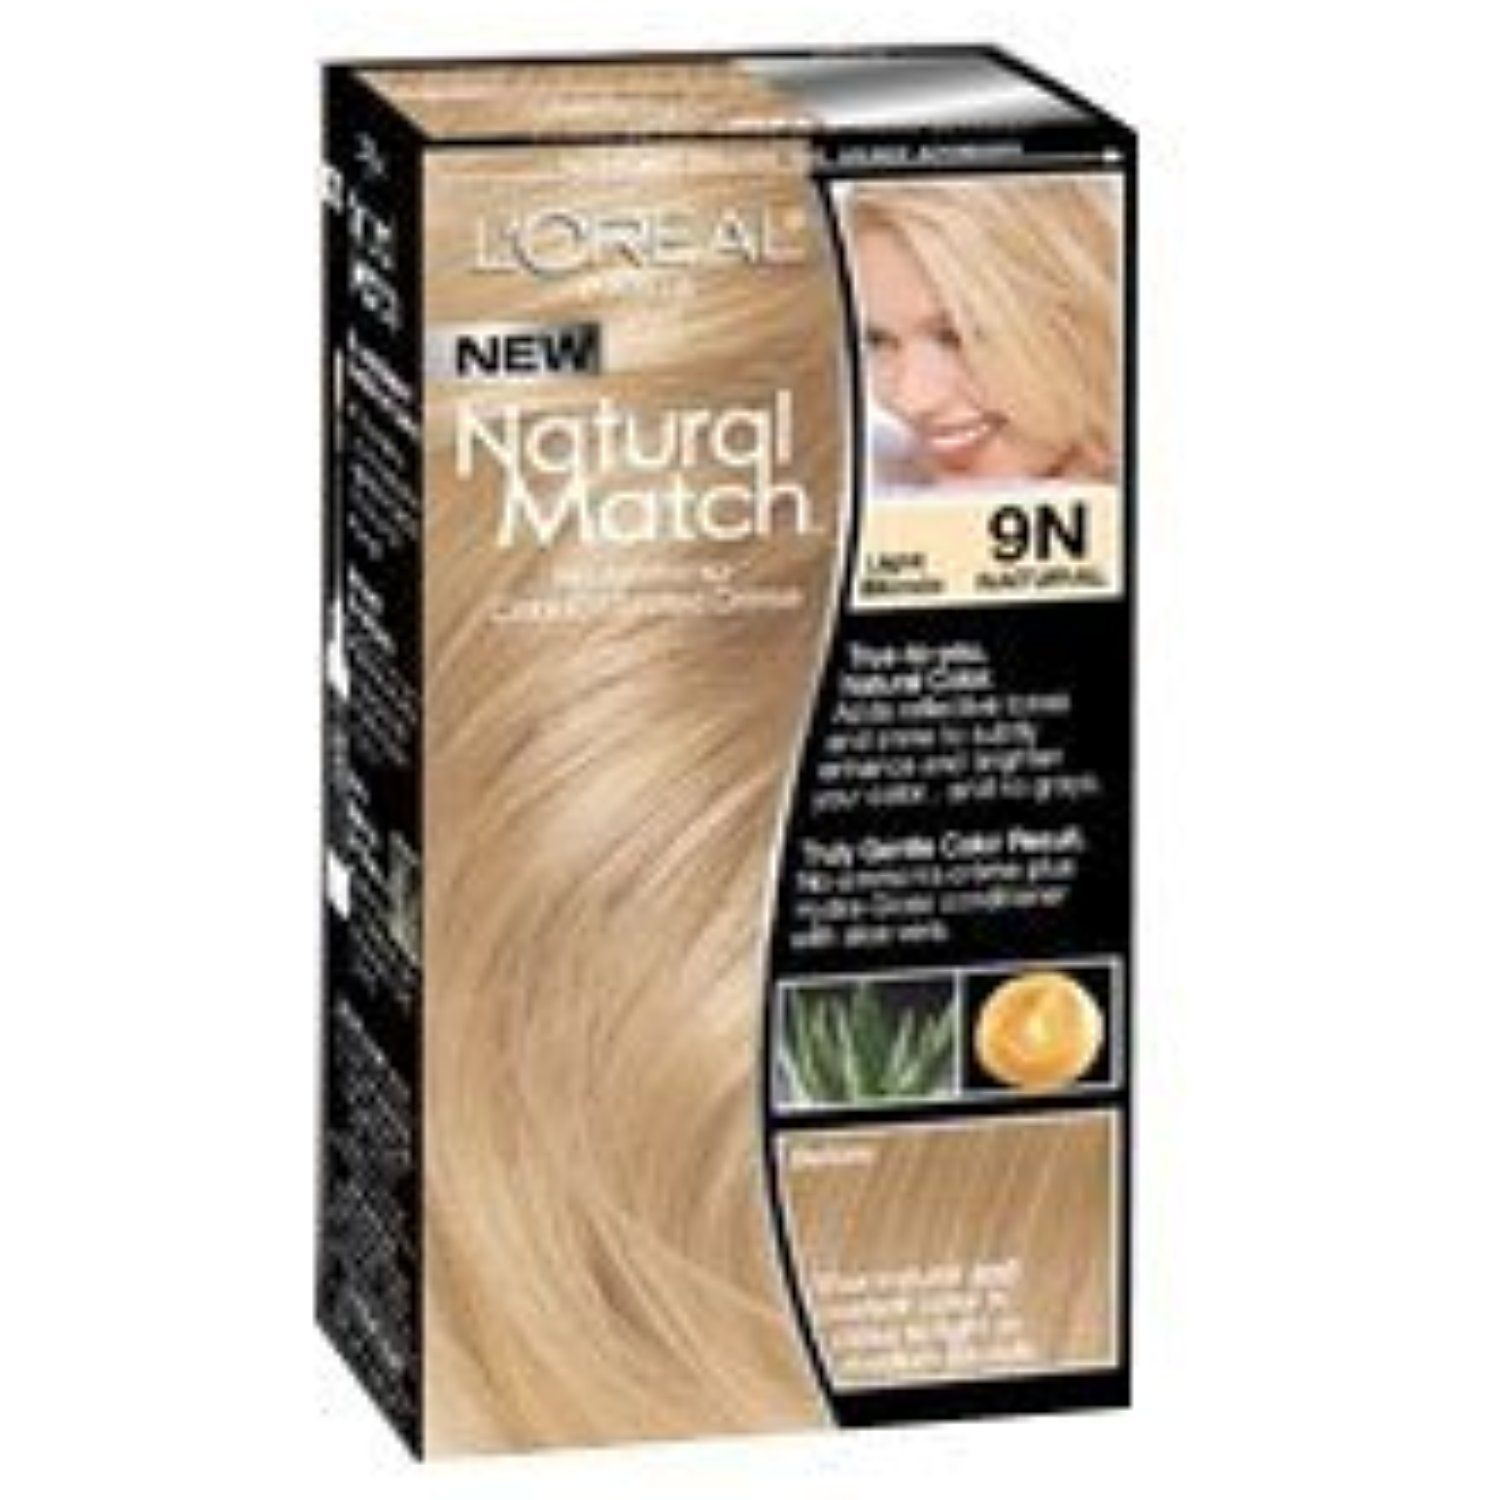 Loreal Natural Match Hair Color 9n Light Blonde Check Out The